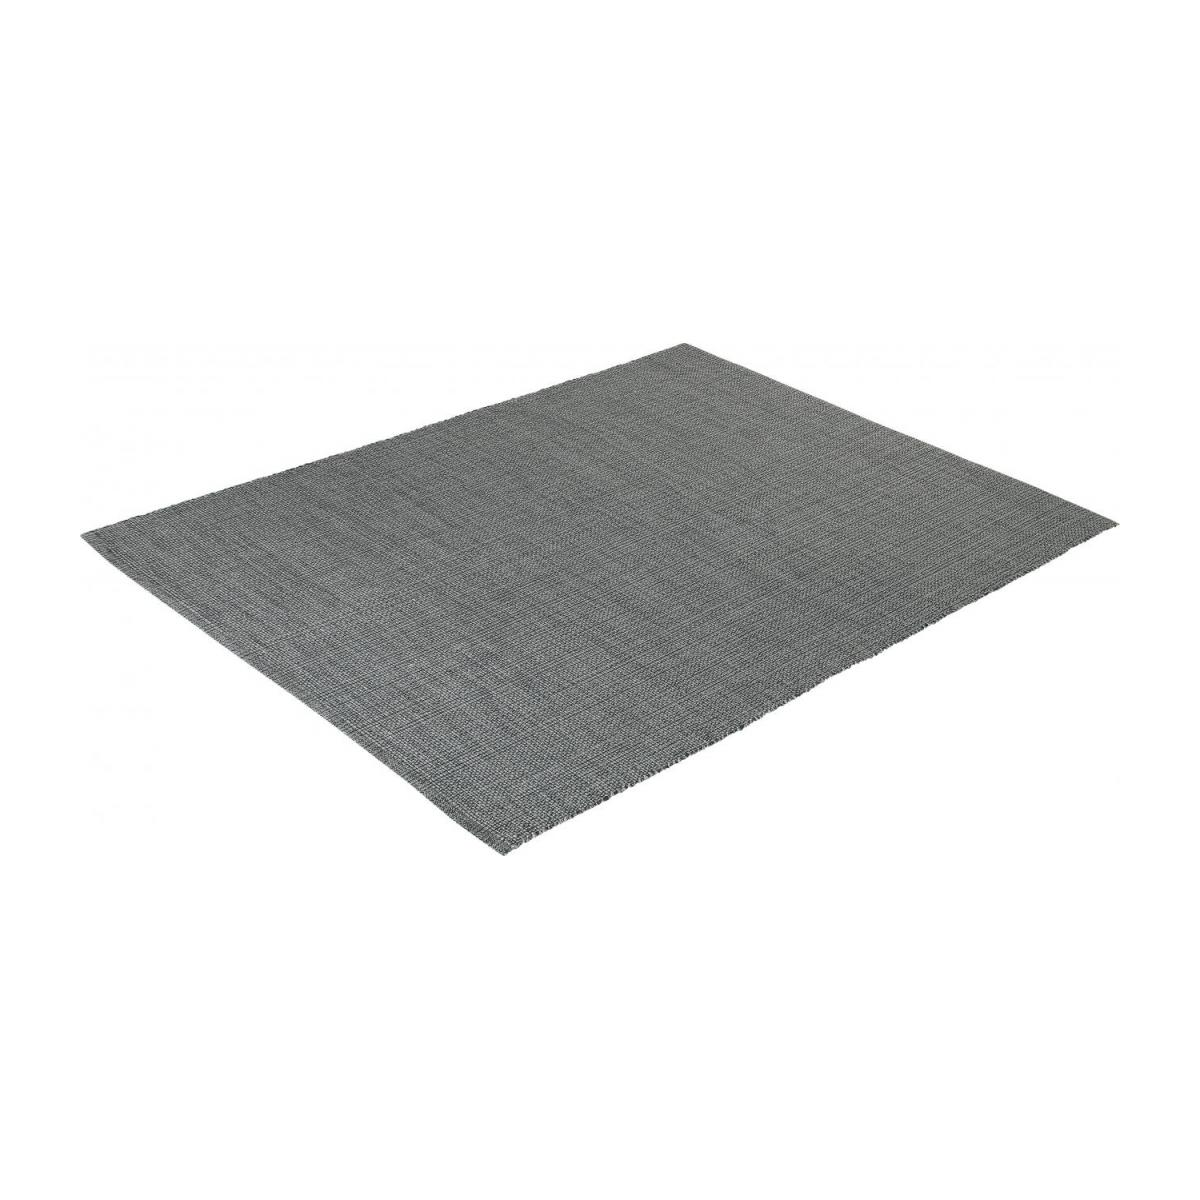 gilmore tapis tiss plat 120x180cm en coton gris fonc. Black Bedroom Furniture Sets. Home Design Ideas